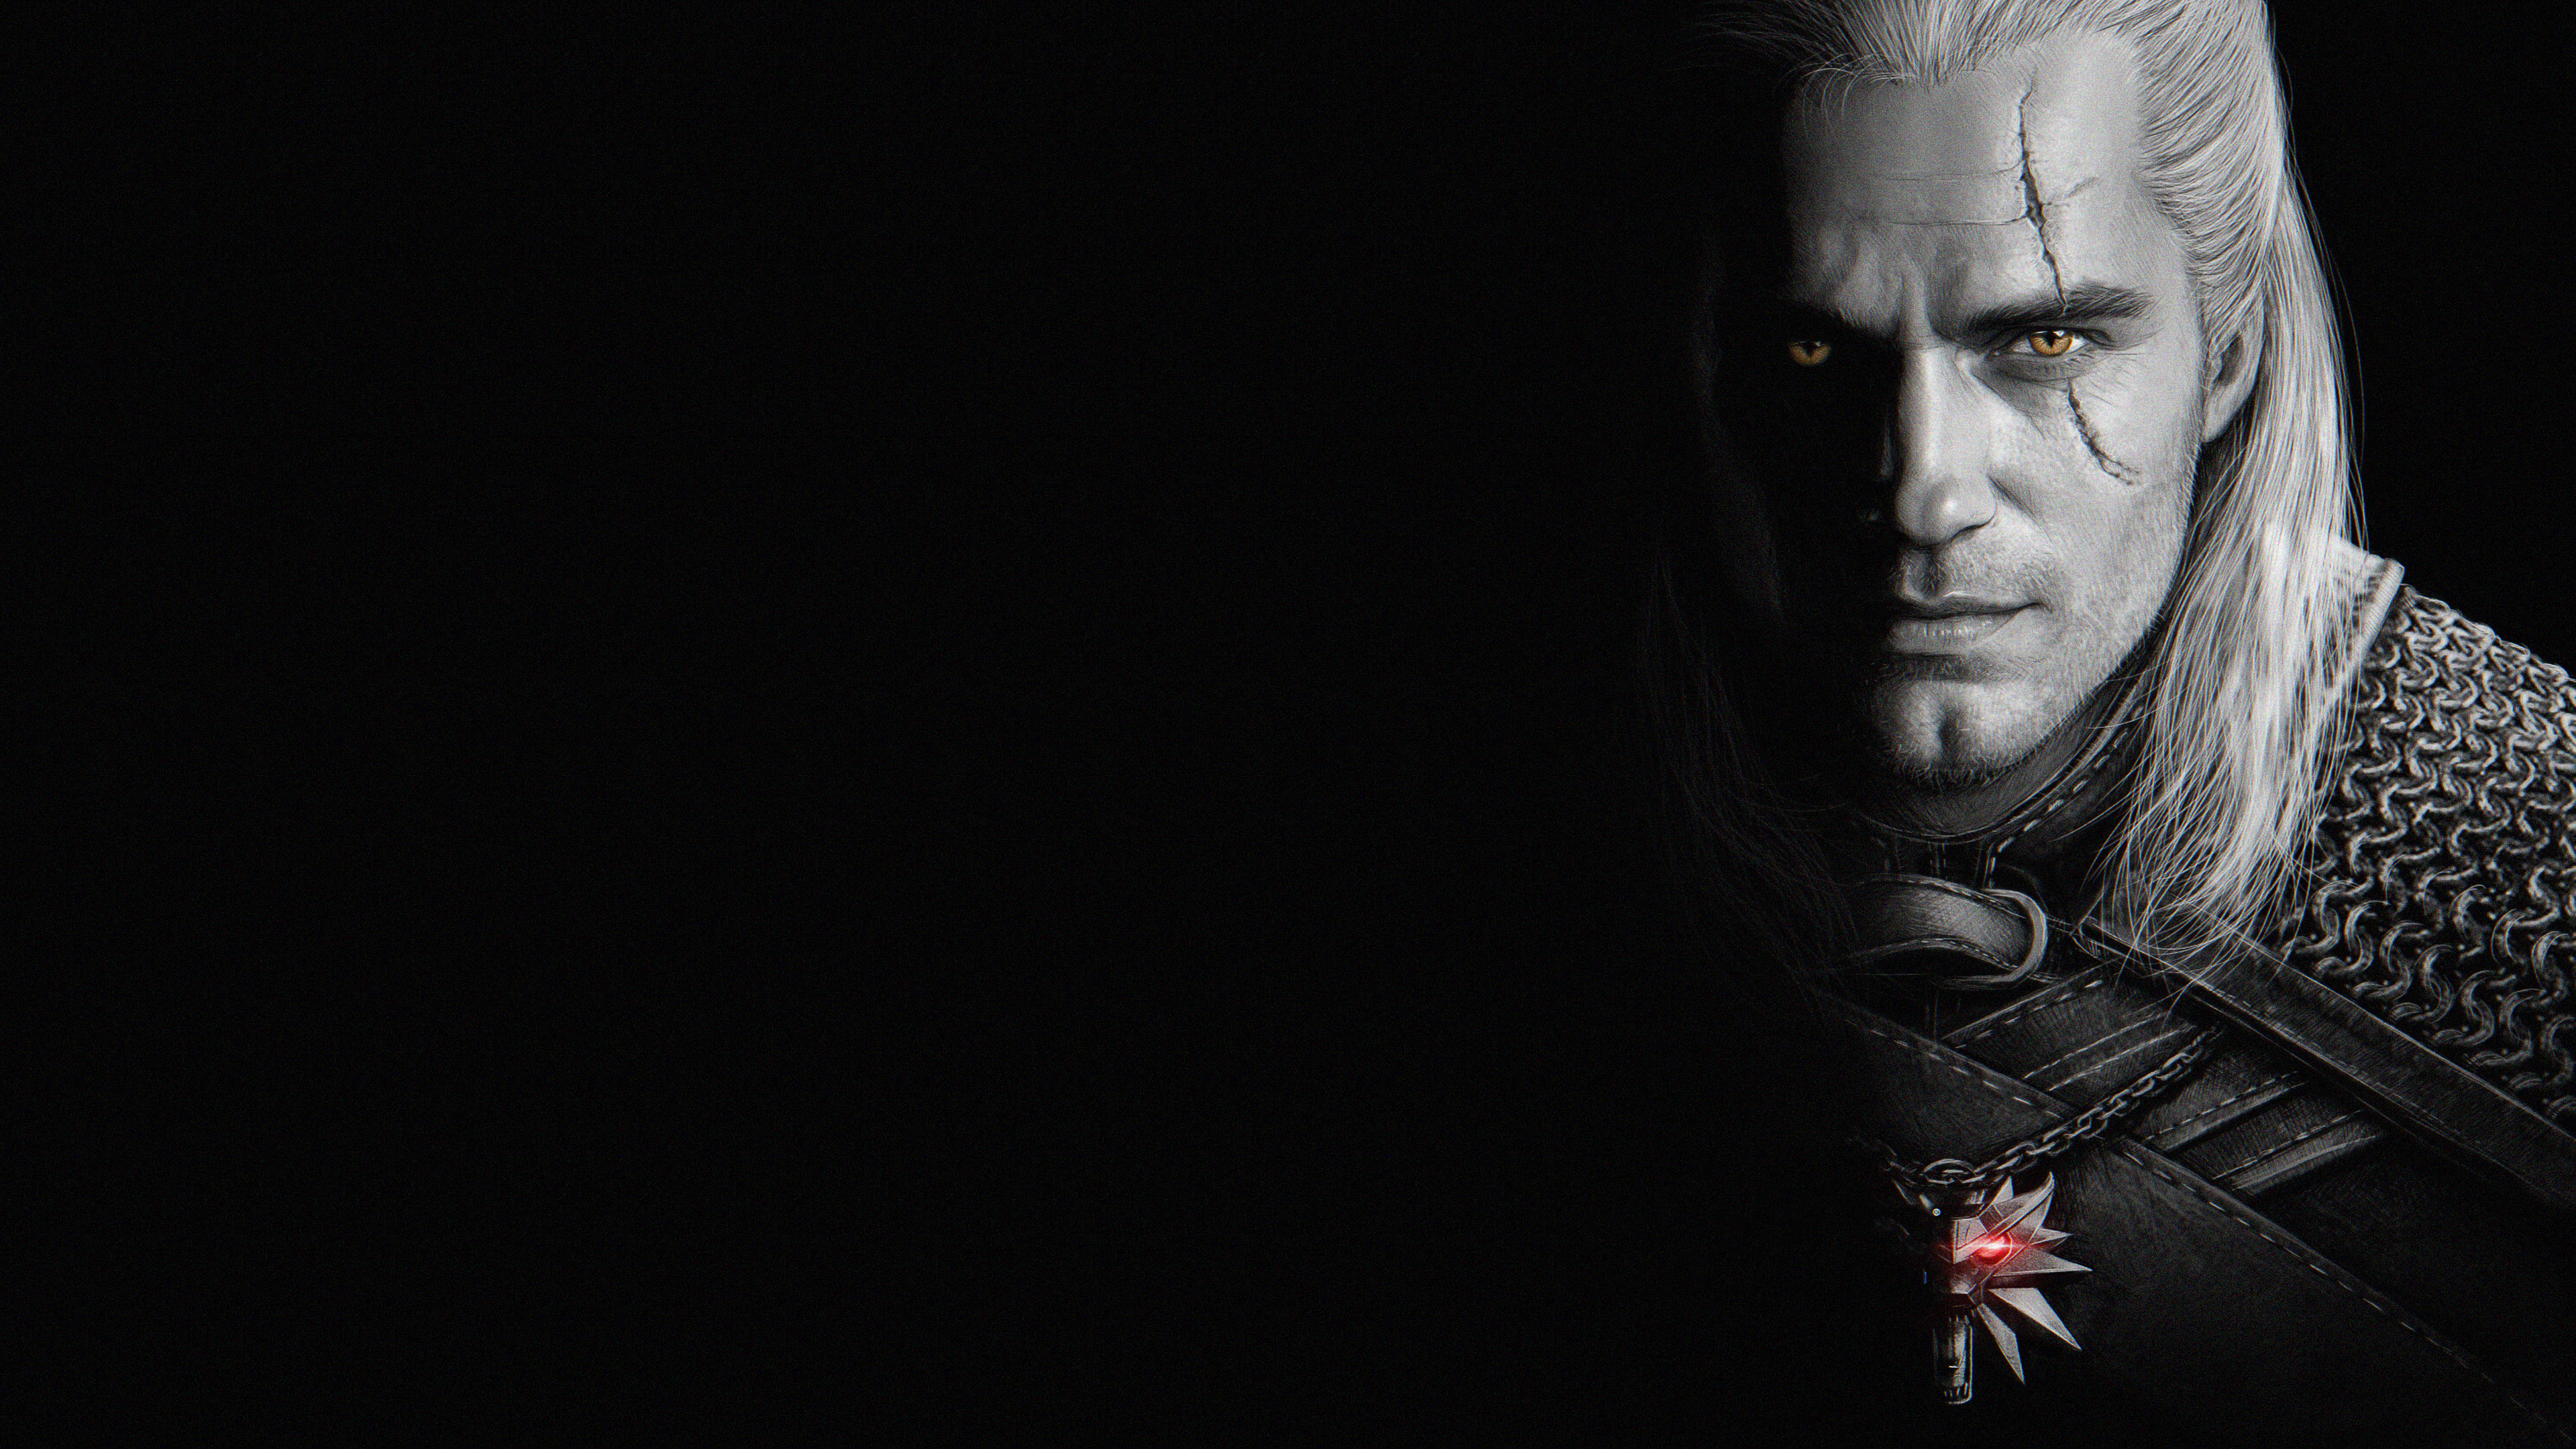 The Witcher 4k Ultra Fondo De Pantalla Hd Fondo De